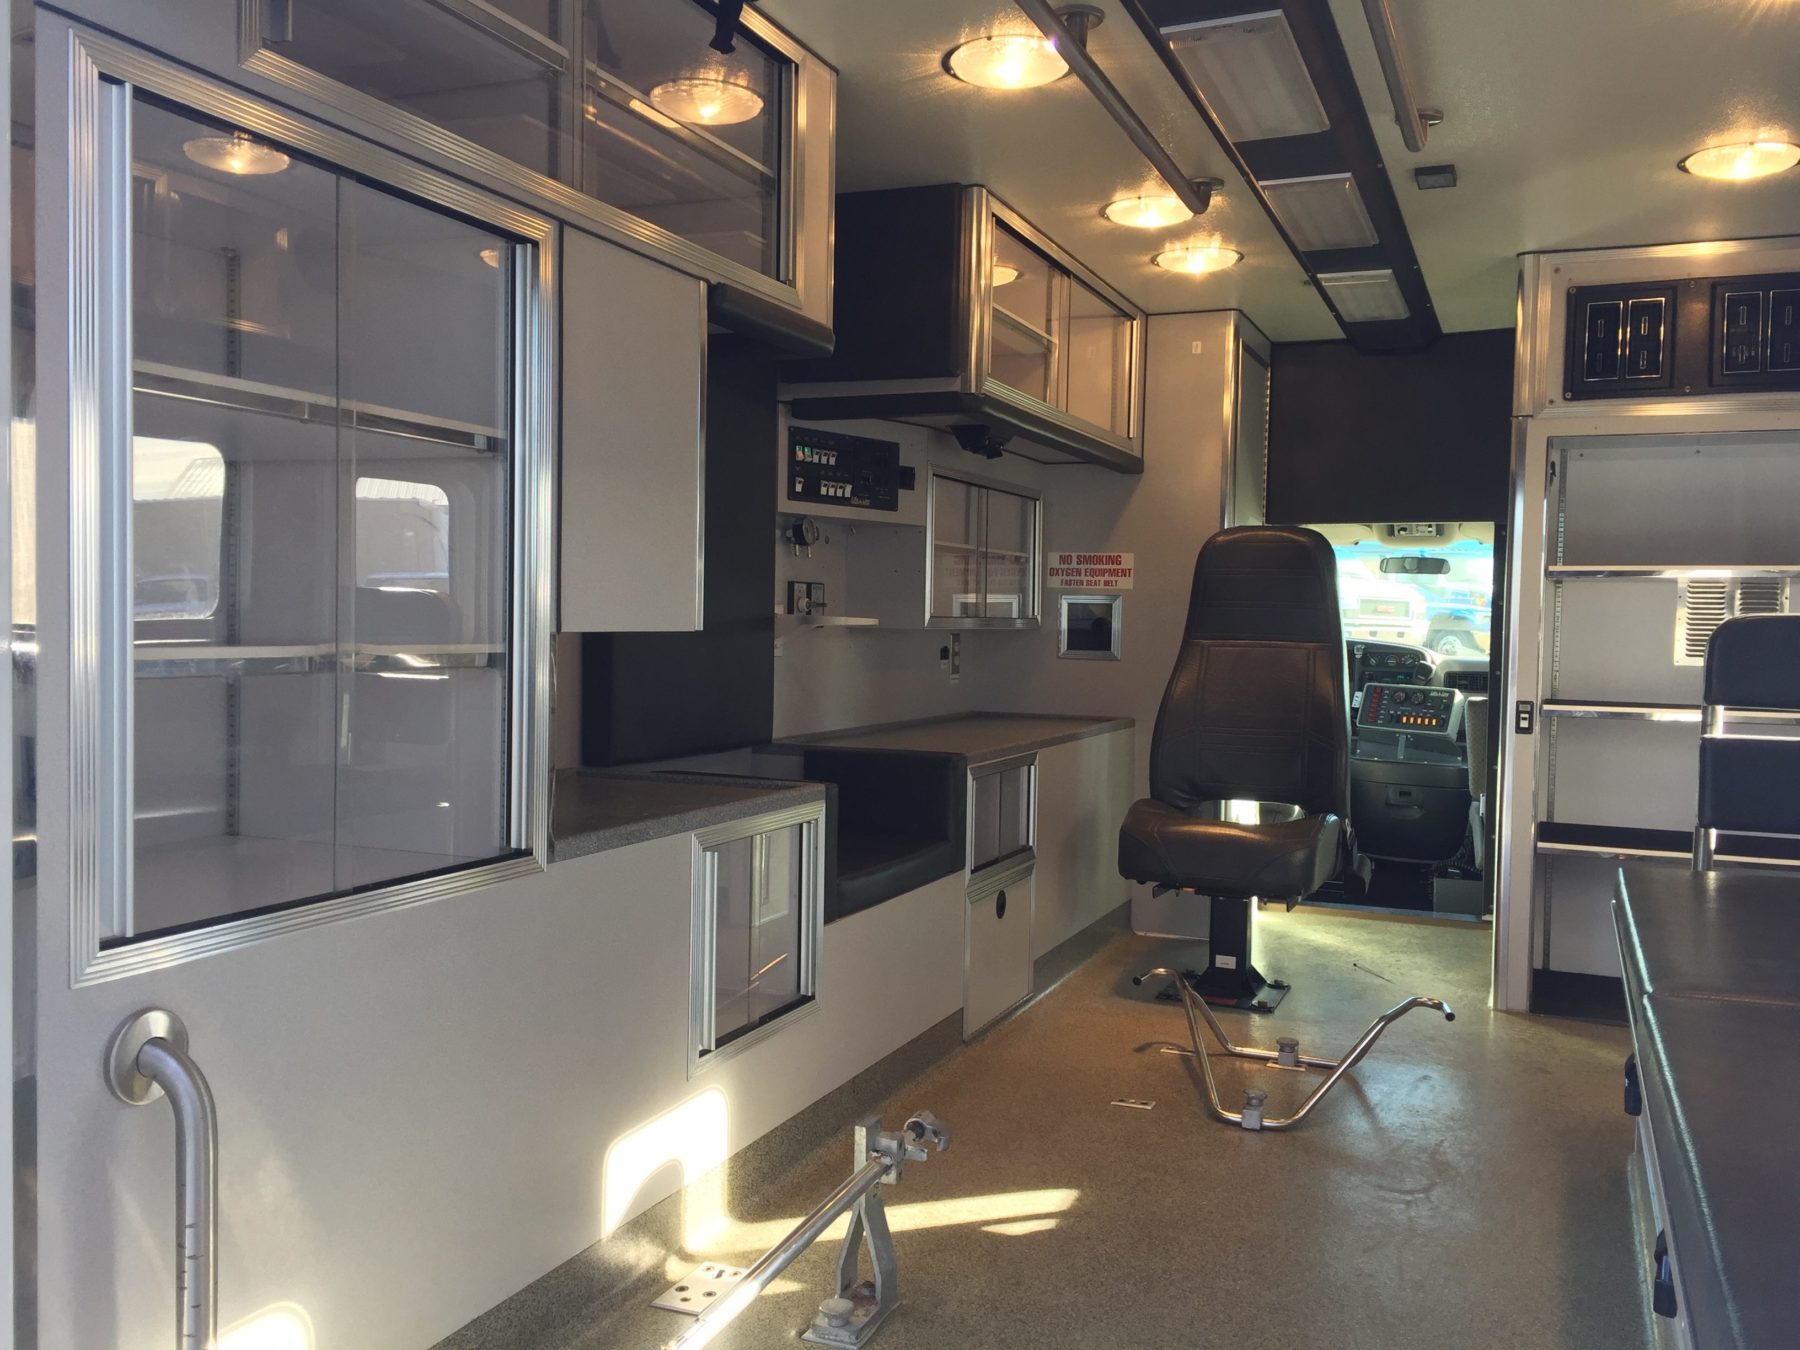 1998 Chevrolet G3500 Type 3 Ambulance For Sale – Picture 10